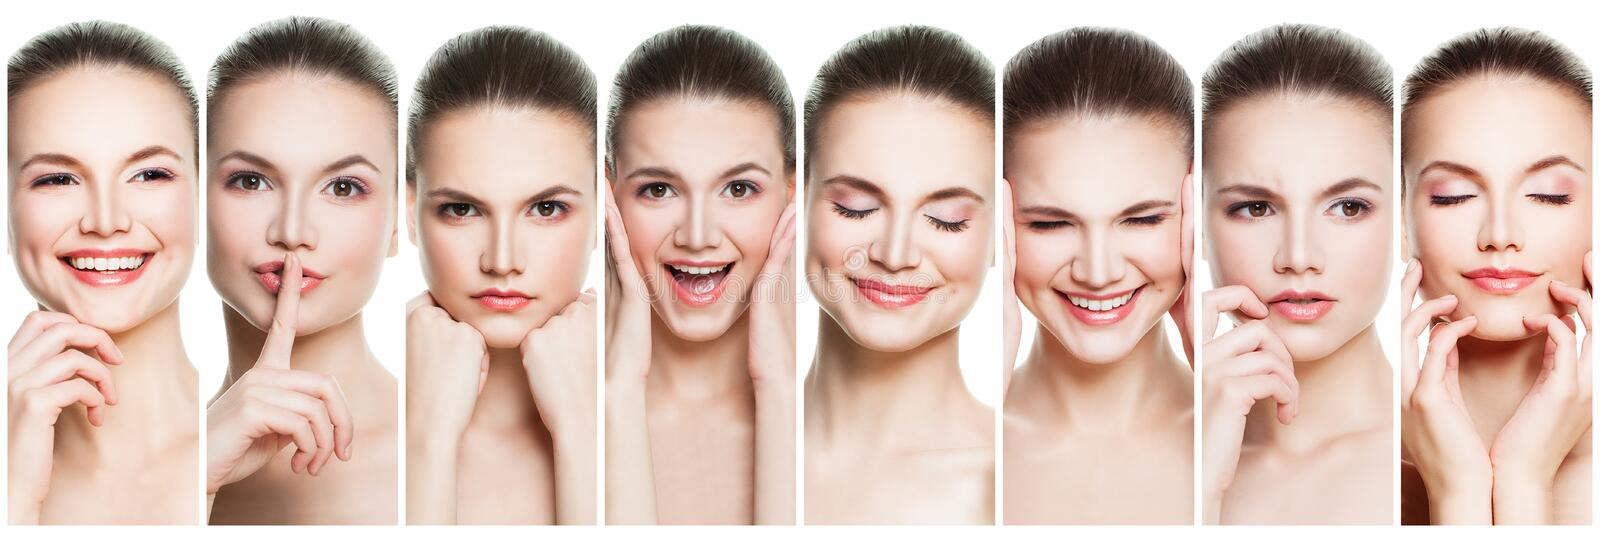 Collage of negative and positive female face expressions. Set of young woman expressing different emotions and gesturing isolated royalty free stock photography